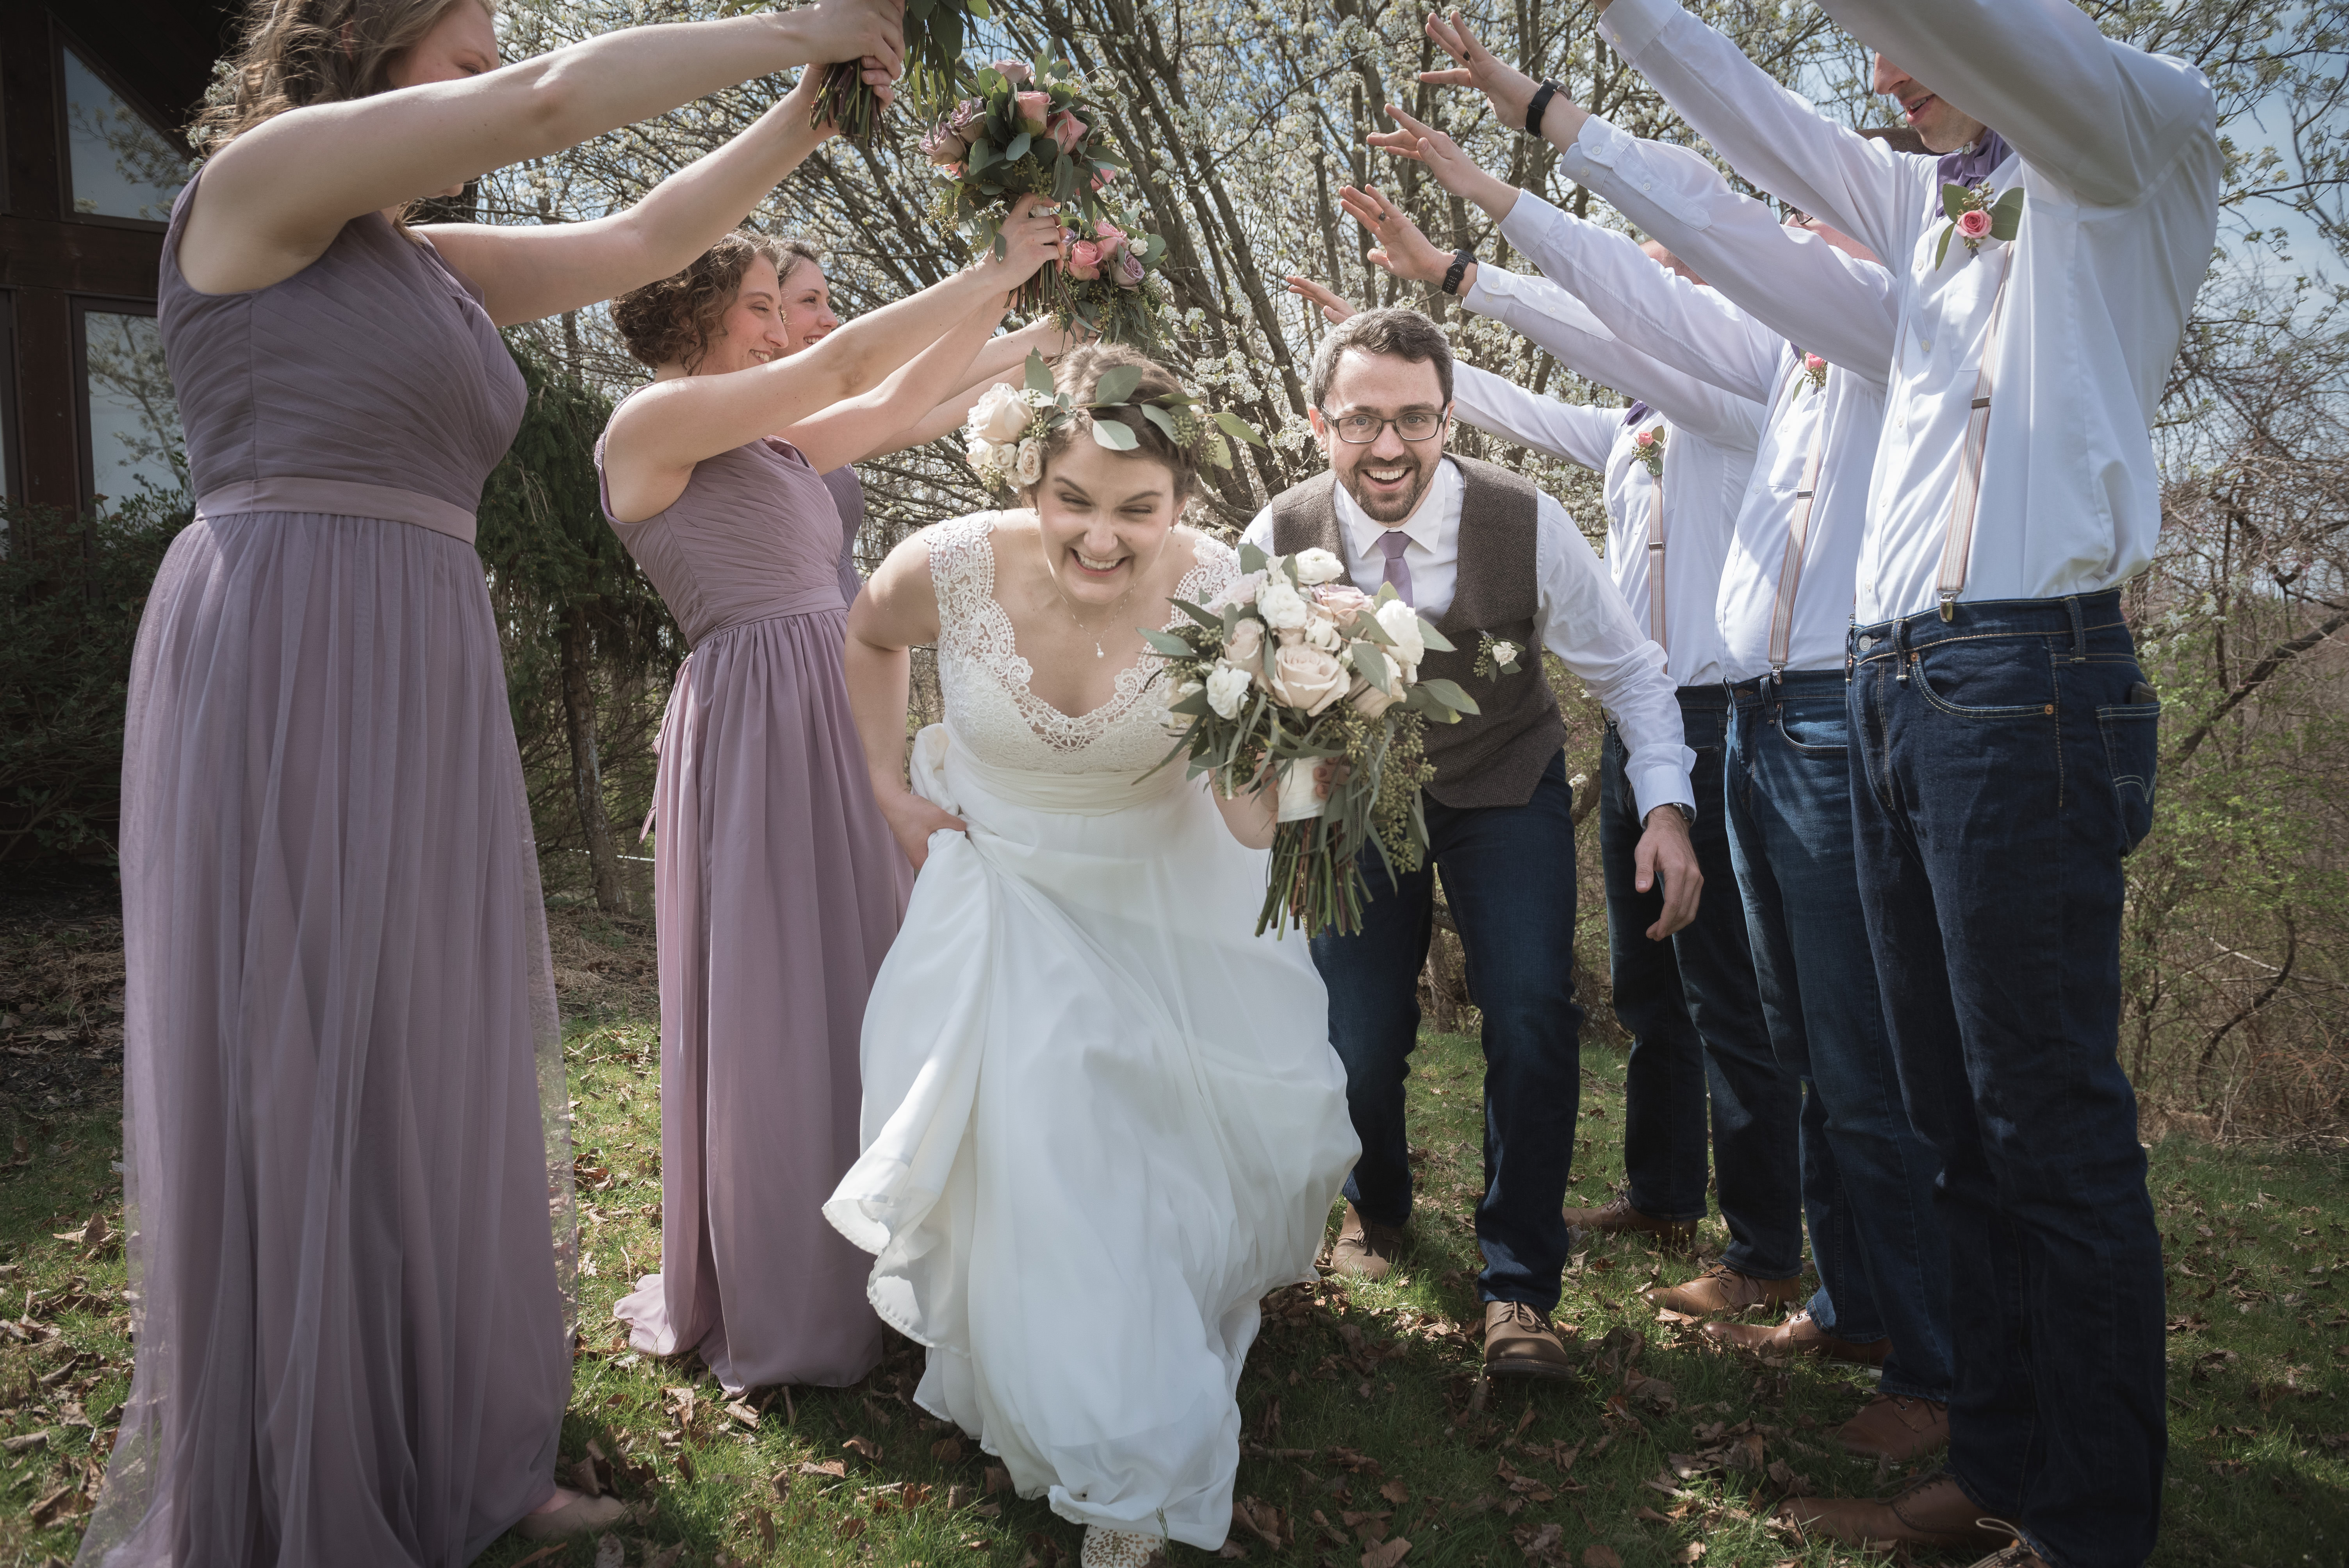 creative bride and groom portrait photography with wedding party in the spring in Athens Ohio